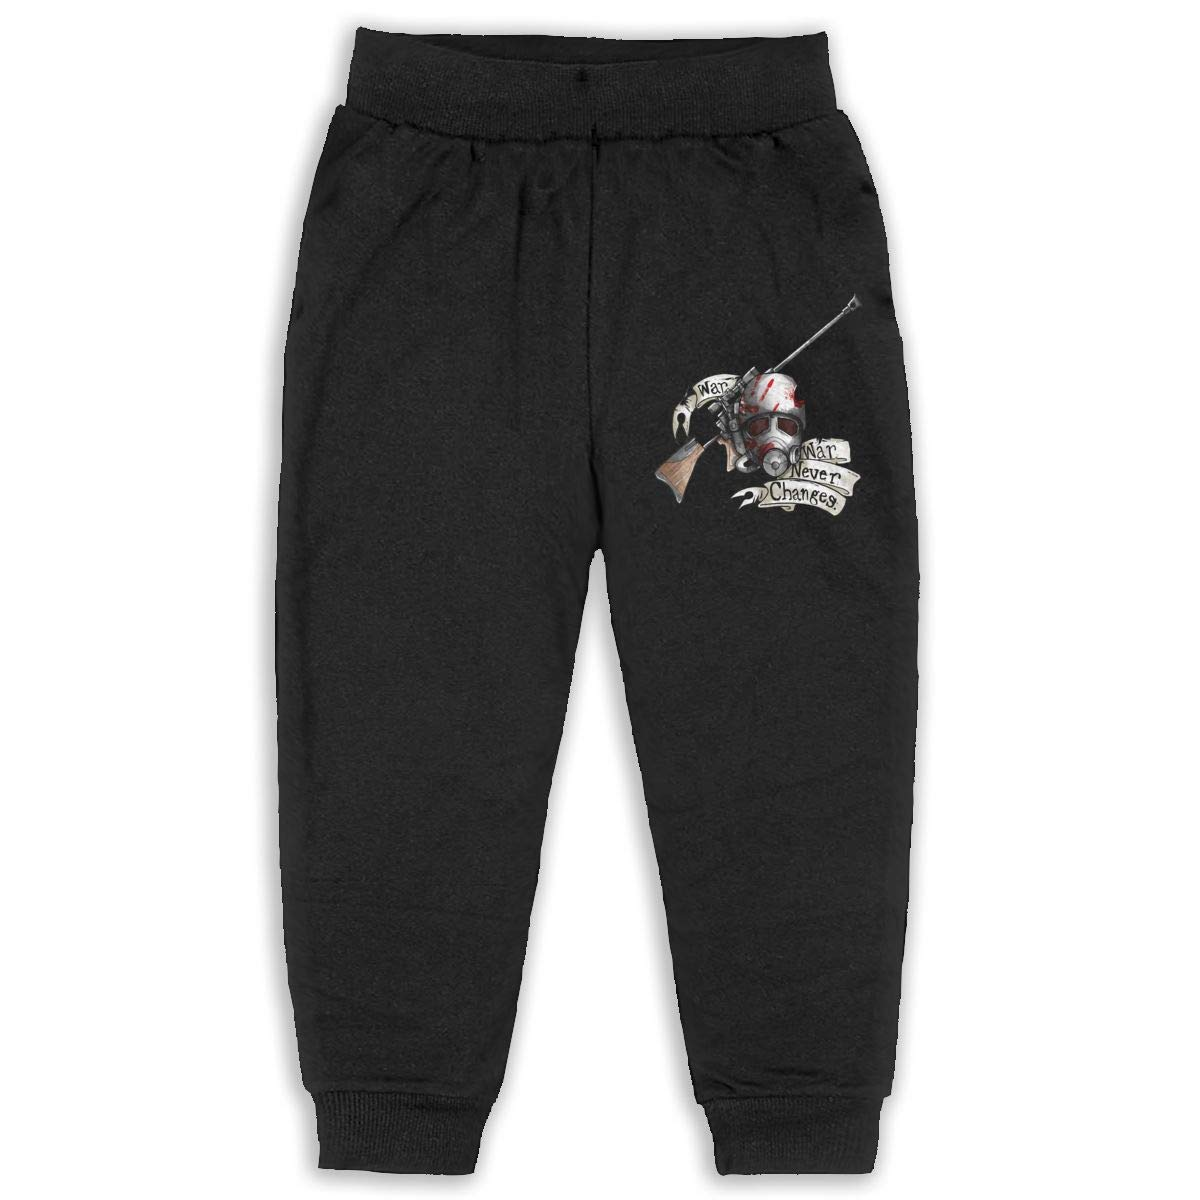 Pleasantly Bioshock Tattoo Long Pants Sweatpants for Unisex Childrens Casual Trousers Black